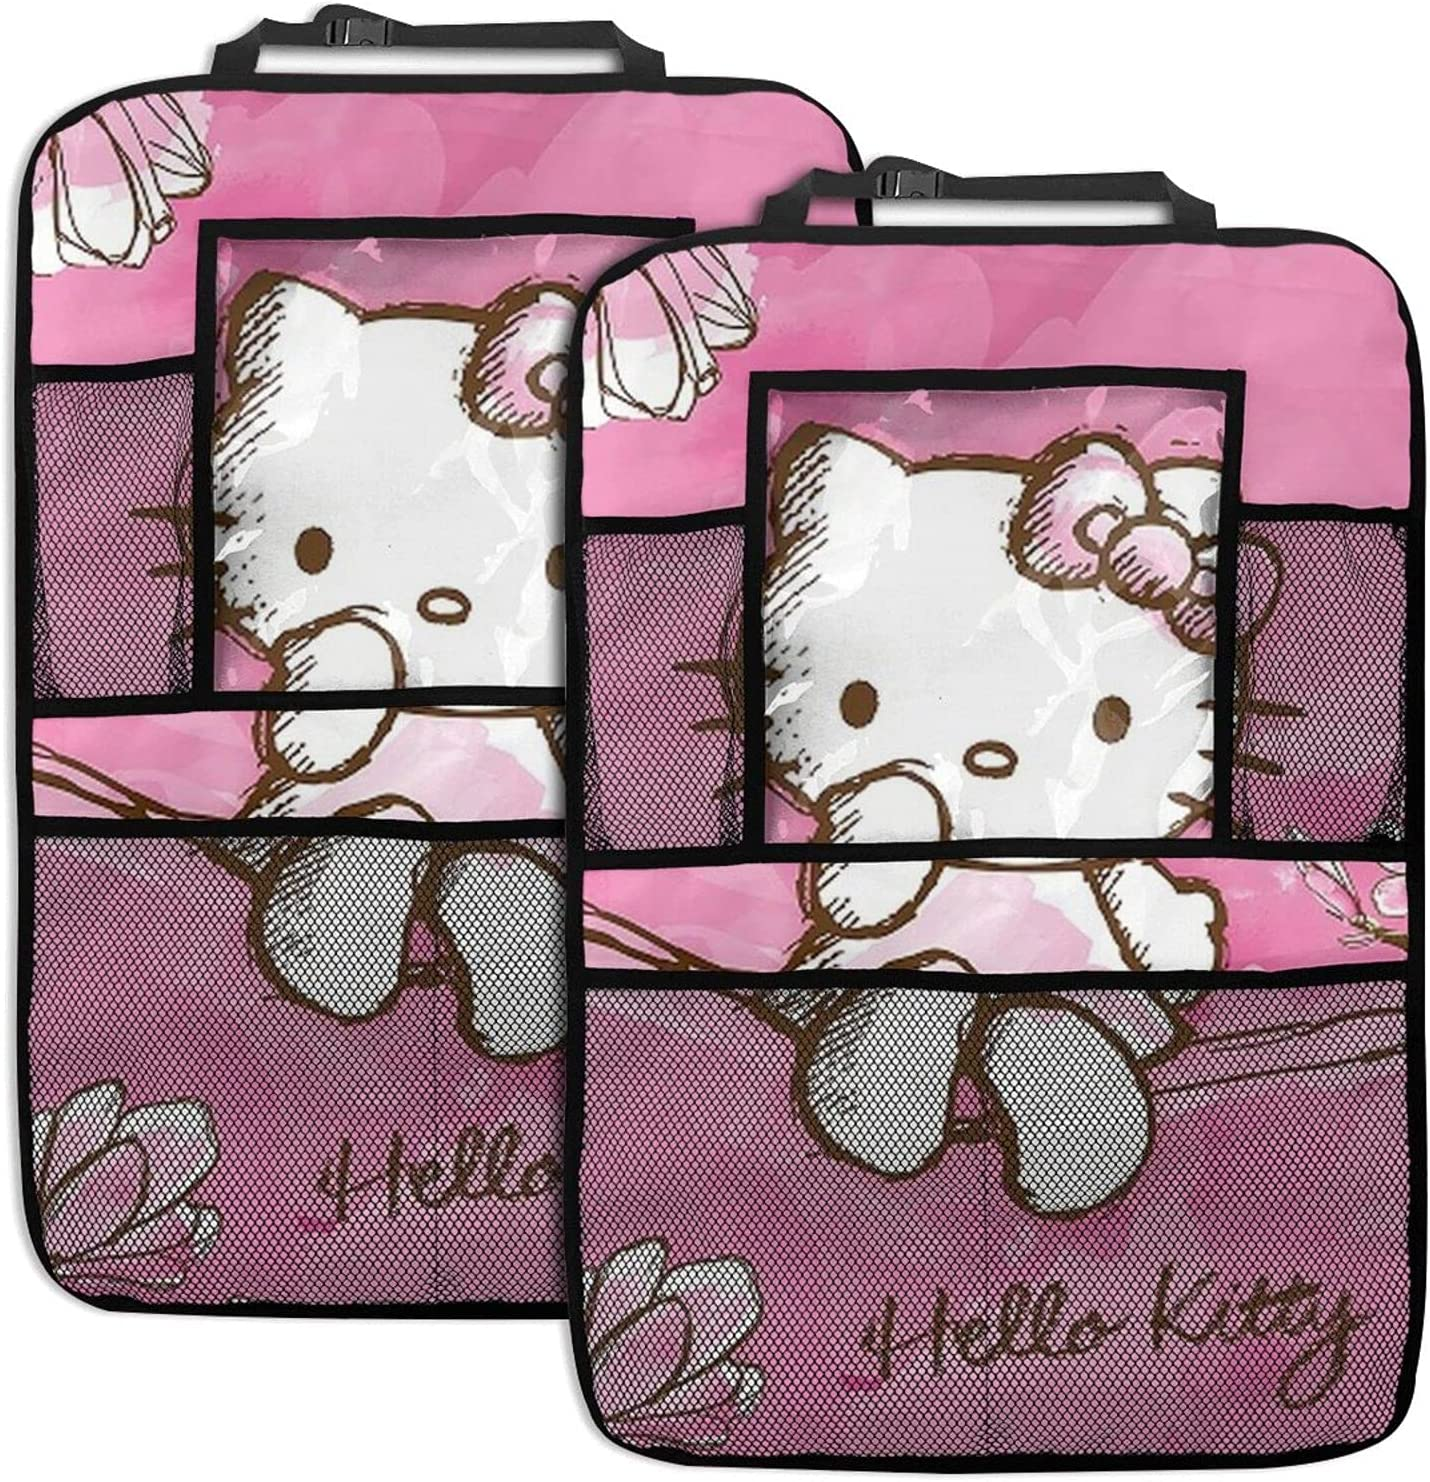 Spring new work one after another Los Angeles Mall Yandong Hello Kitty Backseat Car Mats Back Seat Kick Organizer